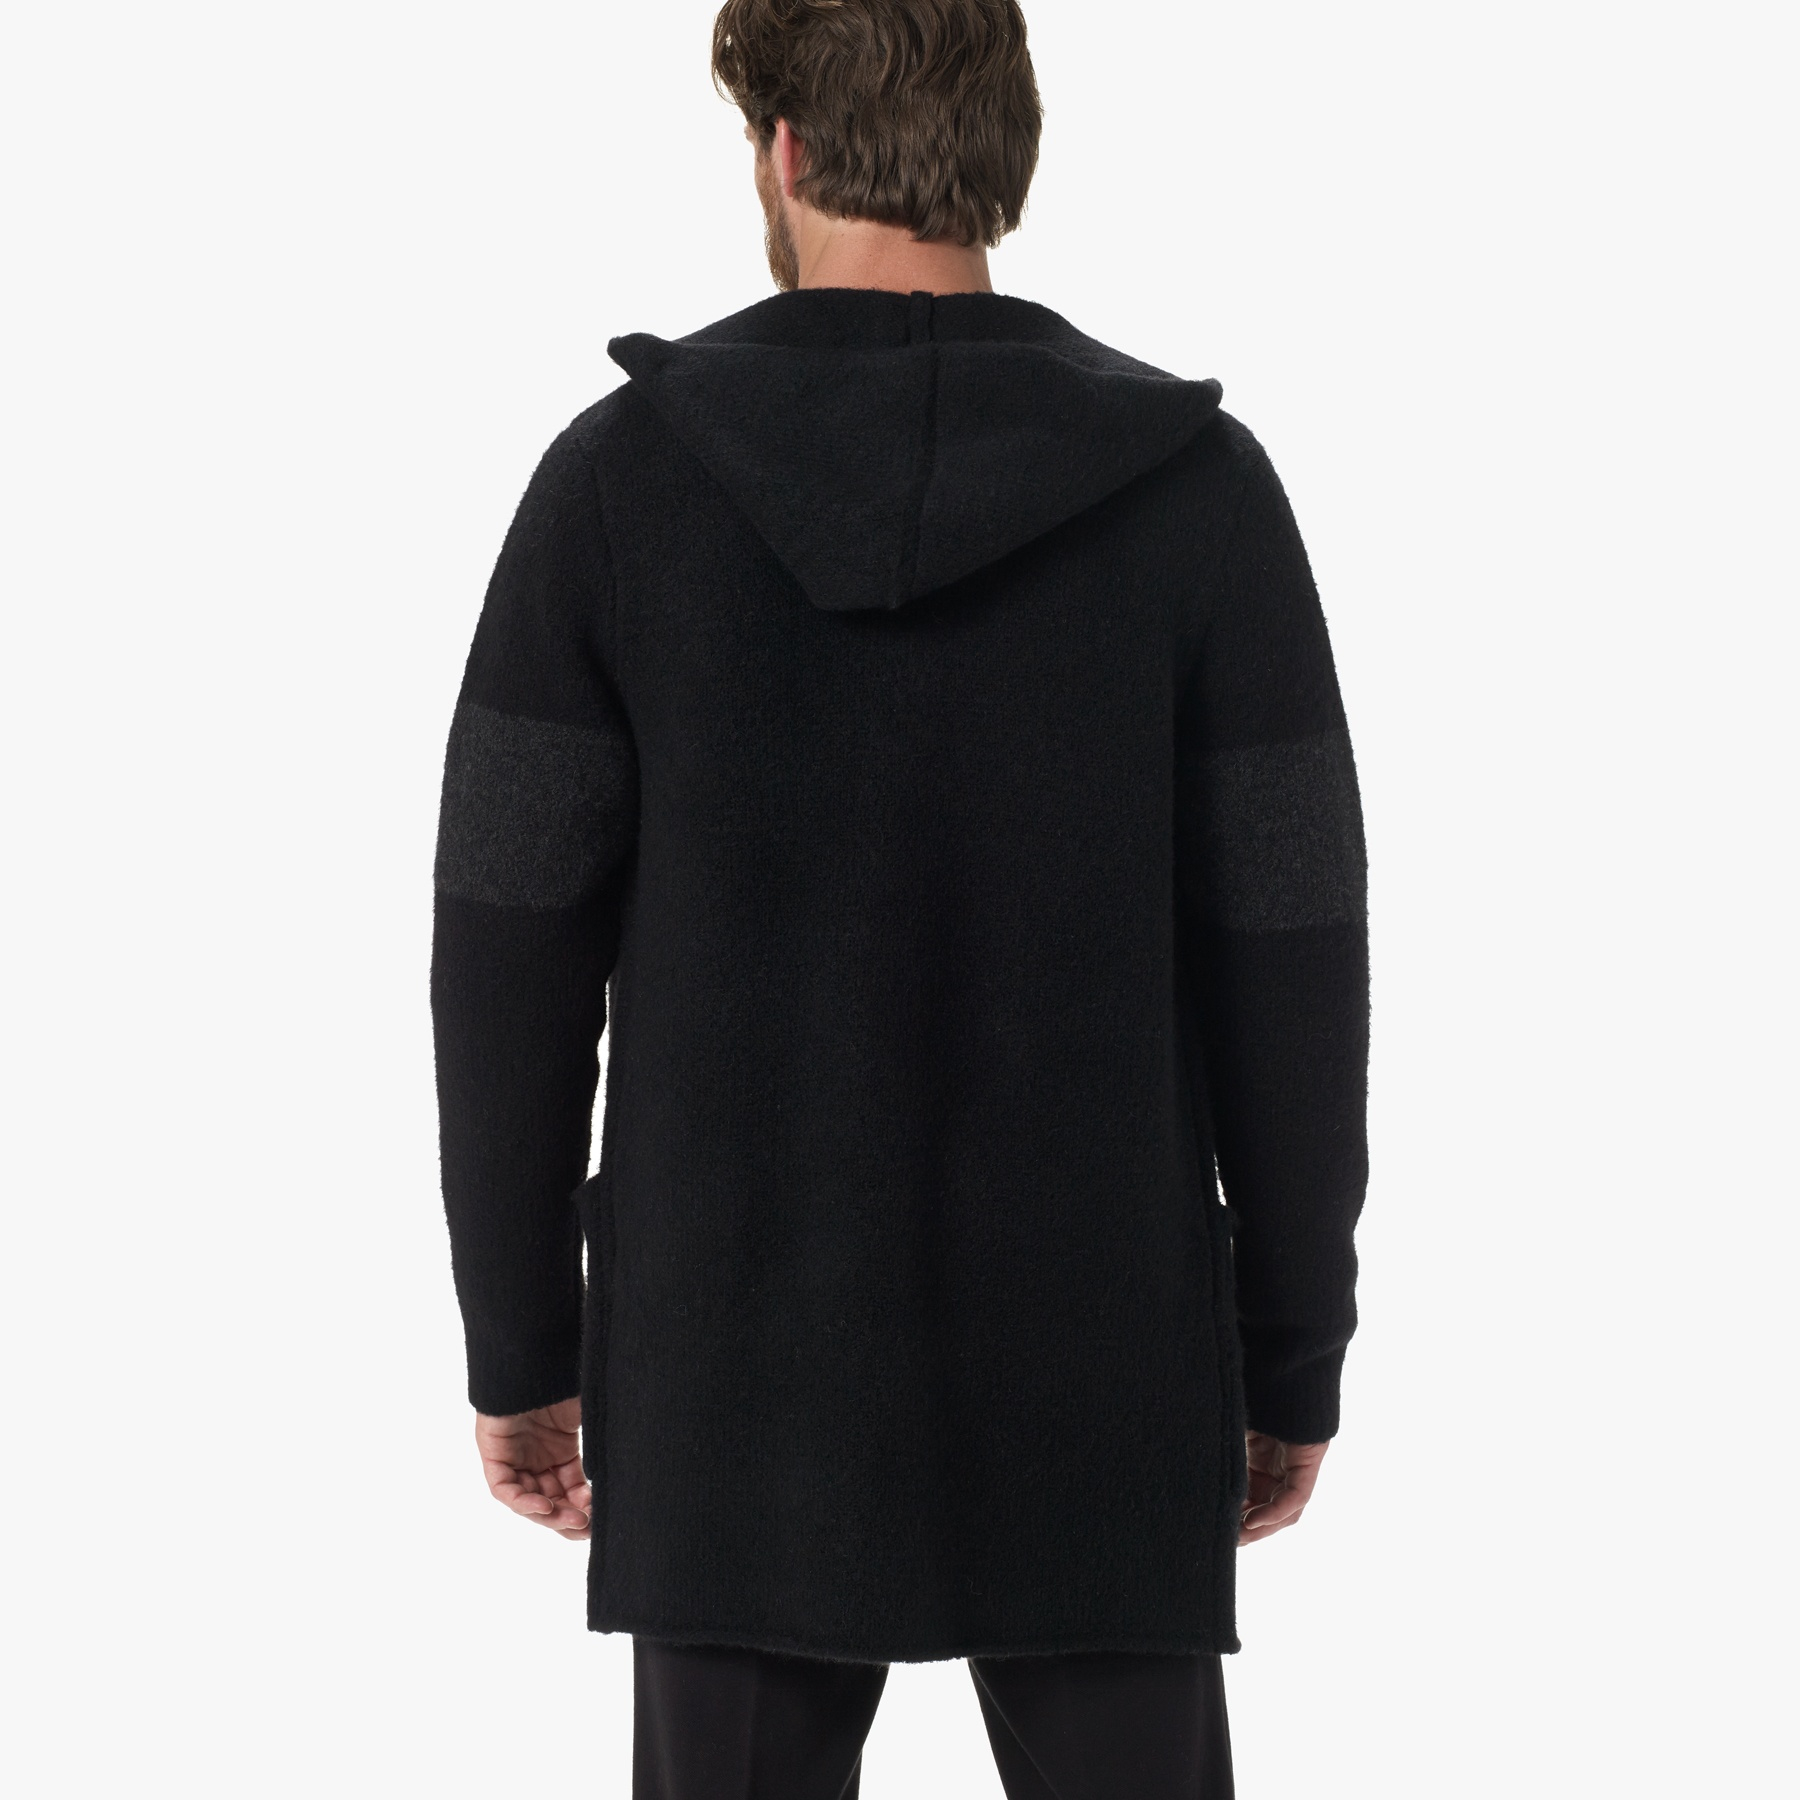 James perse Striped Hooded Sweater Coat in Black for Men | Lyst